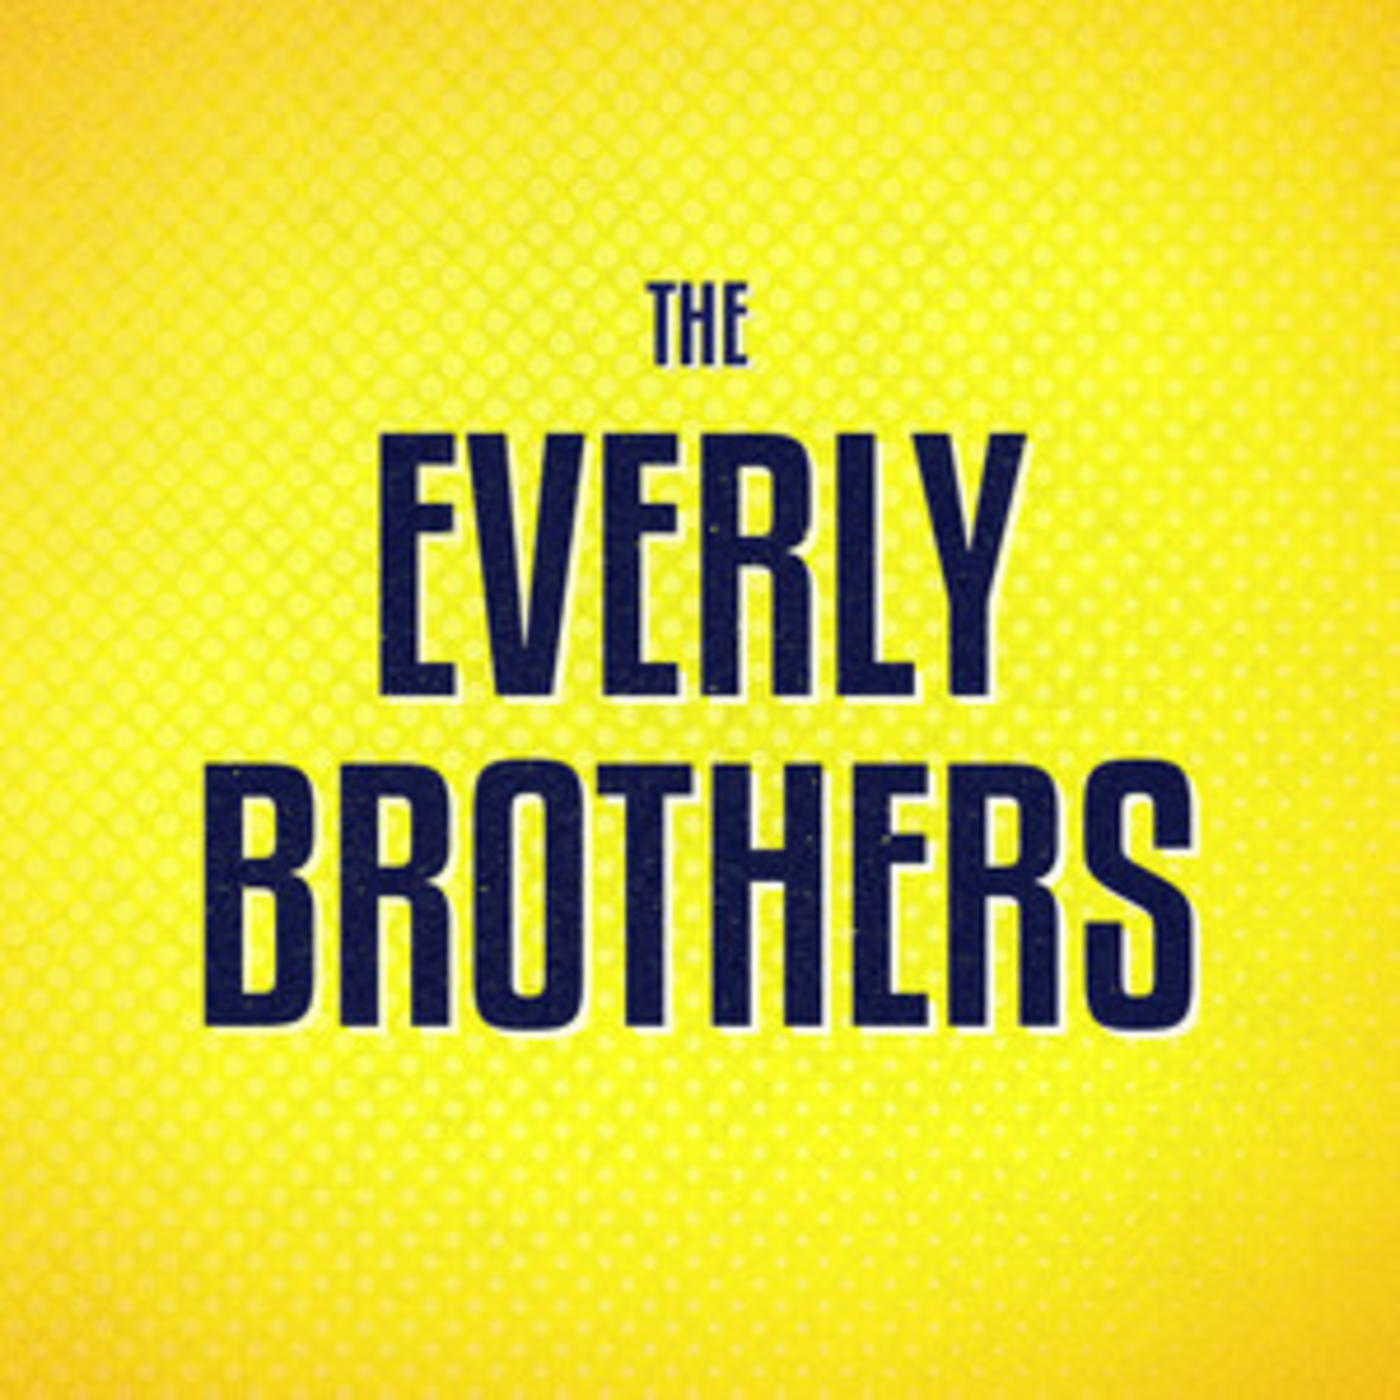 Everly Brothers - Official Playlist - All I Have To Do Is Dream, Wake Up Little Susie, Bye Bye Love